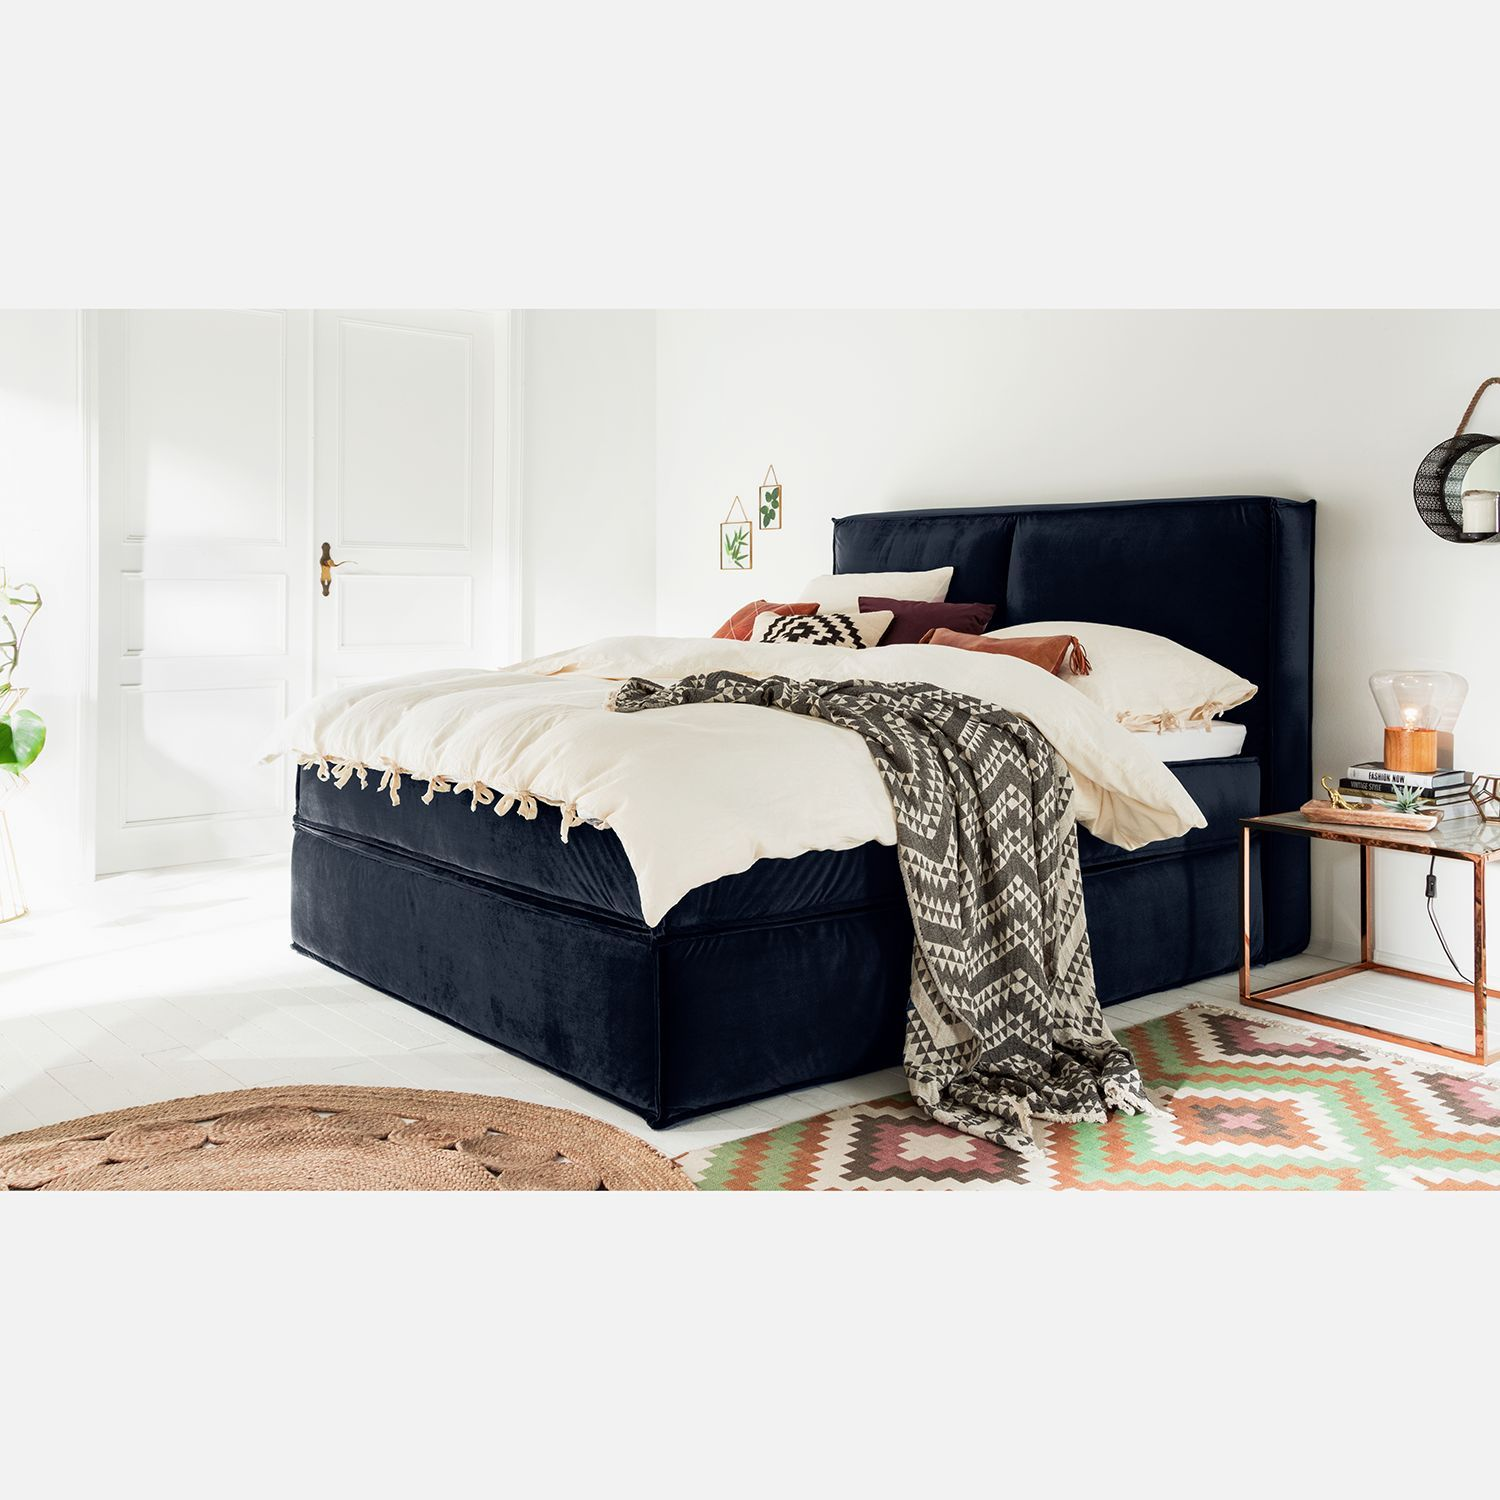 Boxspringbett Bea 180x200 Cm Hellgrau H2 Mit Visco Topper Boxspringbett Kinx In 2019 Budenzauber Bed Home Decor Und